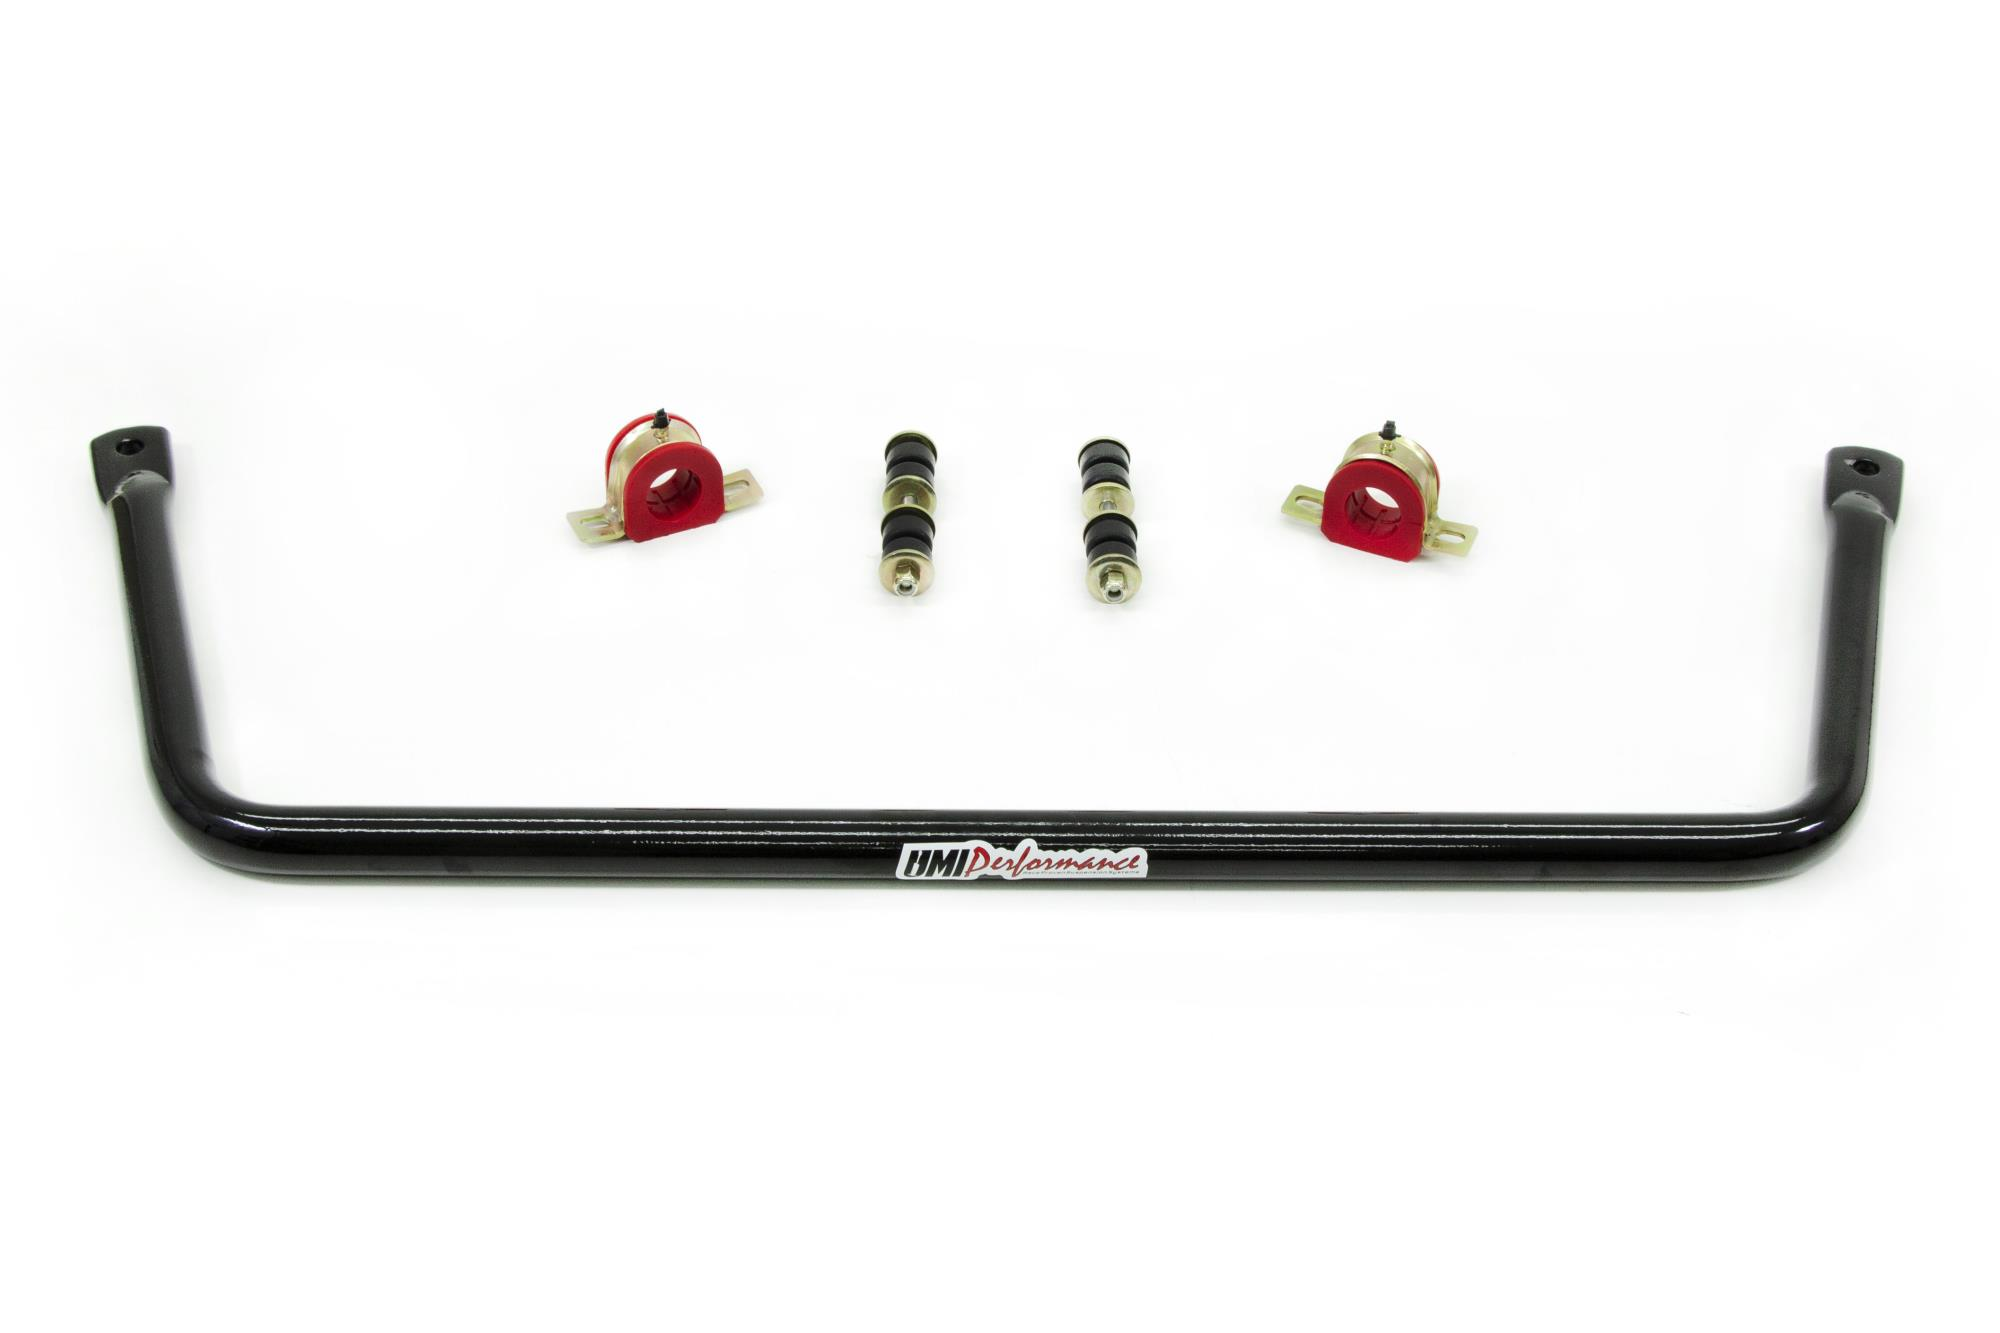 Umi Performance 73 87 Gm C10 Truck Front Sway Bar 1 3 8